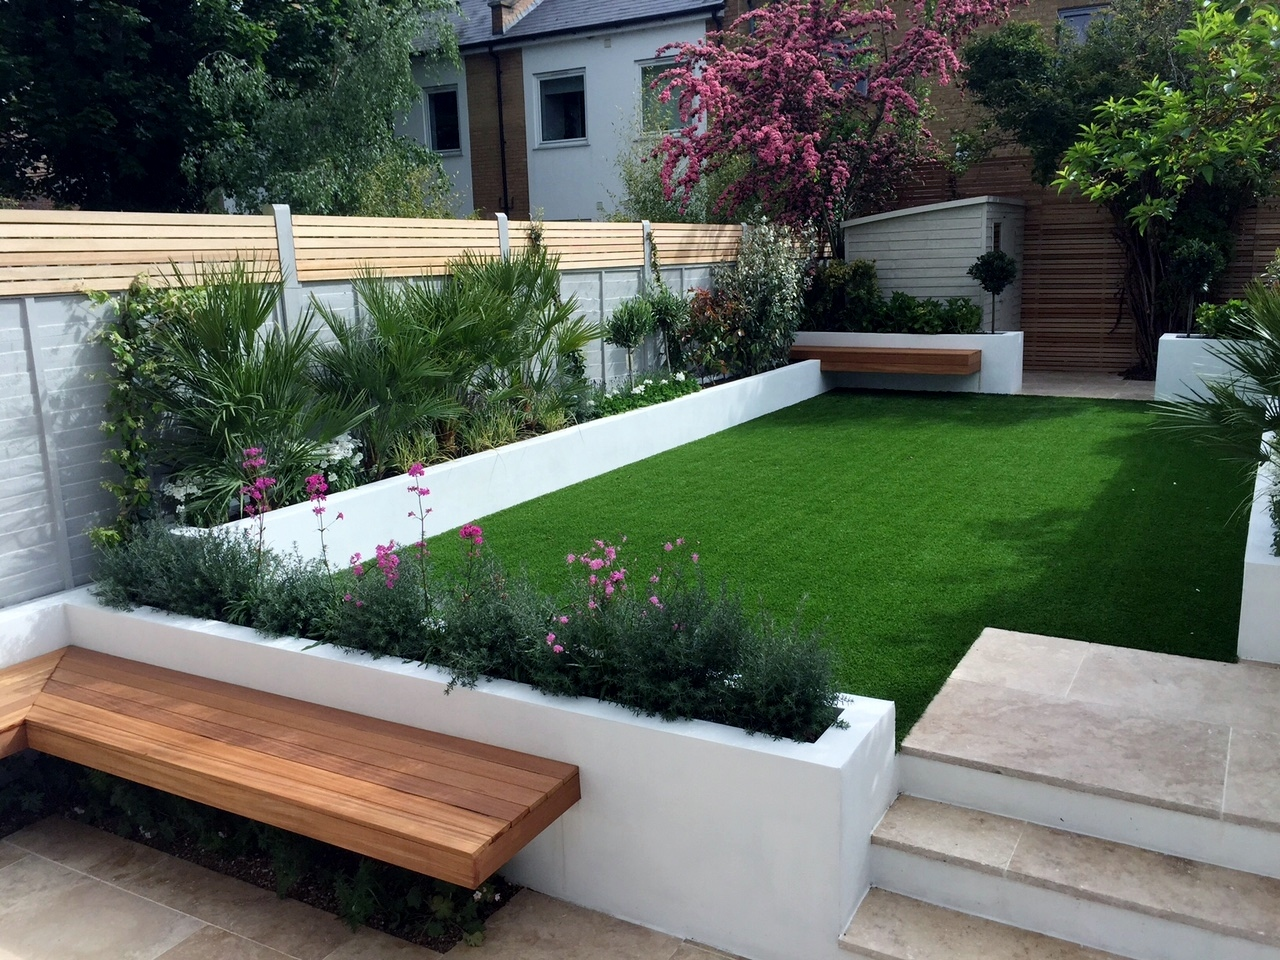 Modern garden design ideas fulham chelsea battersea for In house garden design